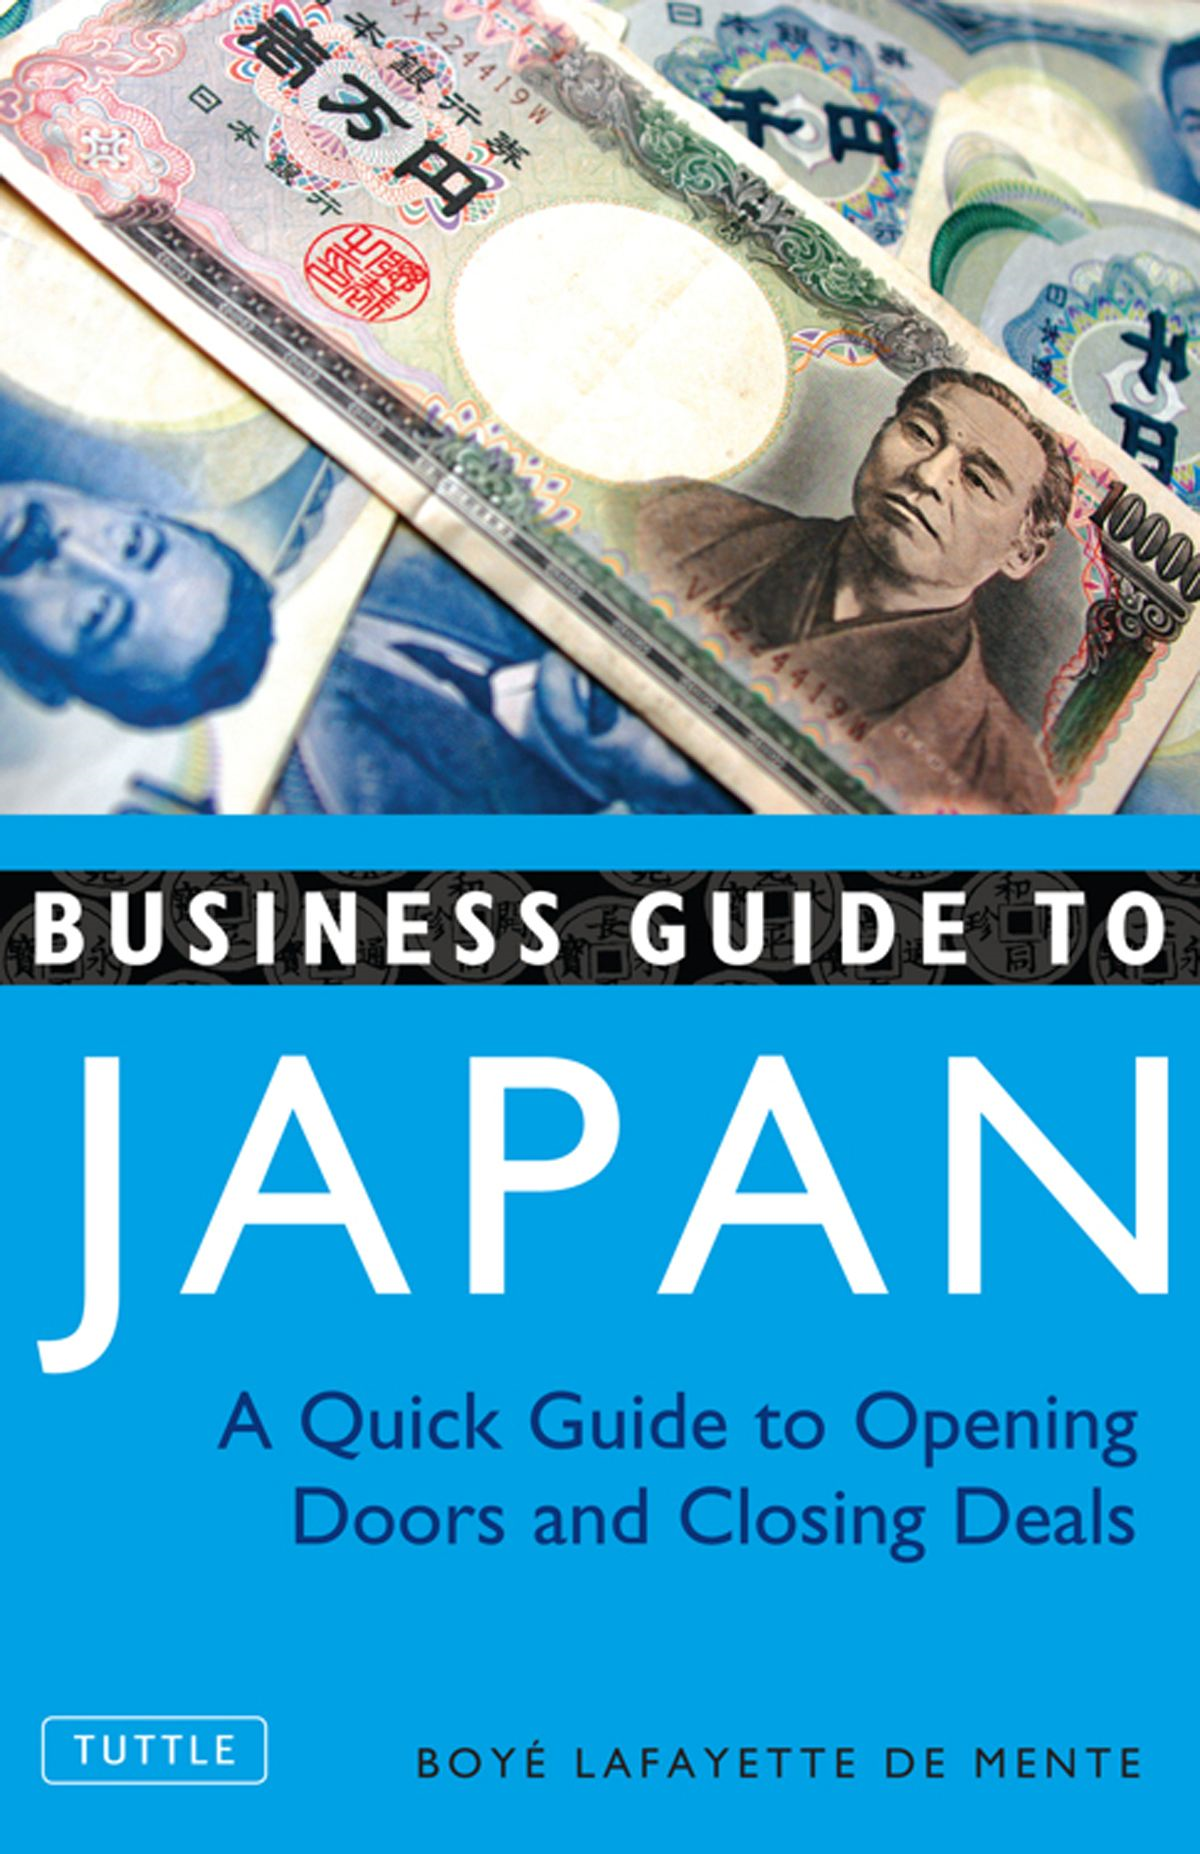 Business Guide to Japan: A Quick Guide to Opening Doors and Closing Deals